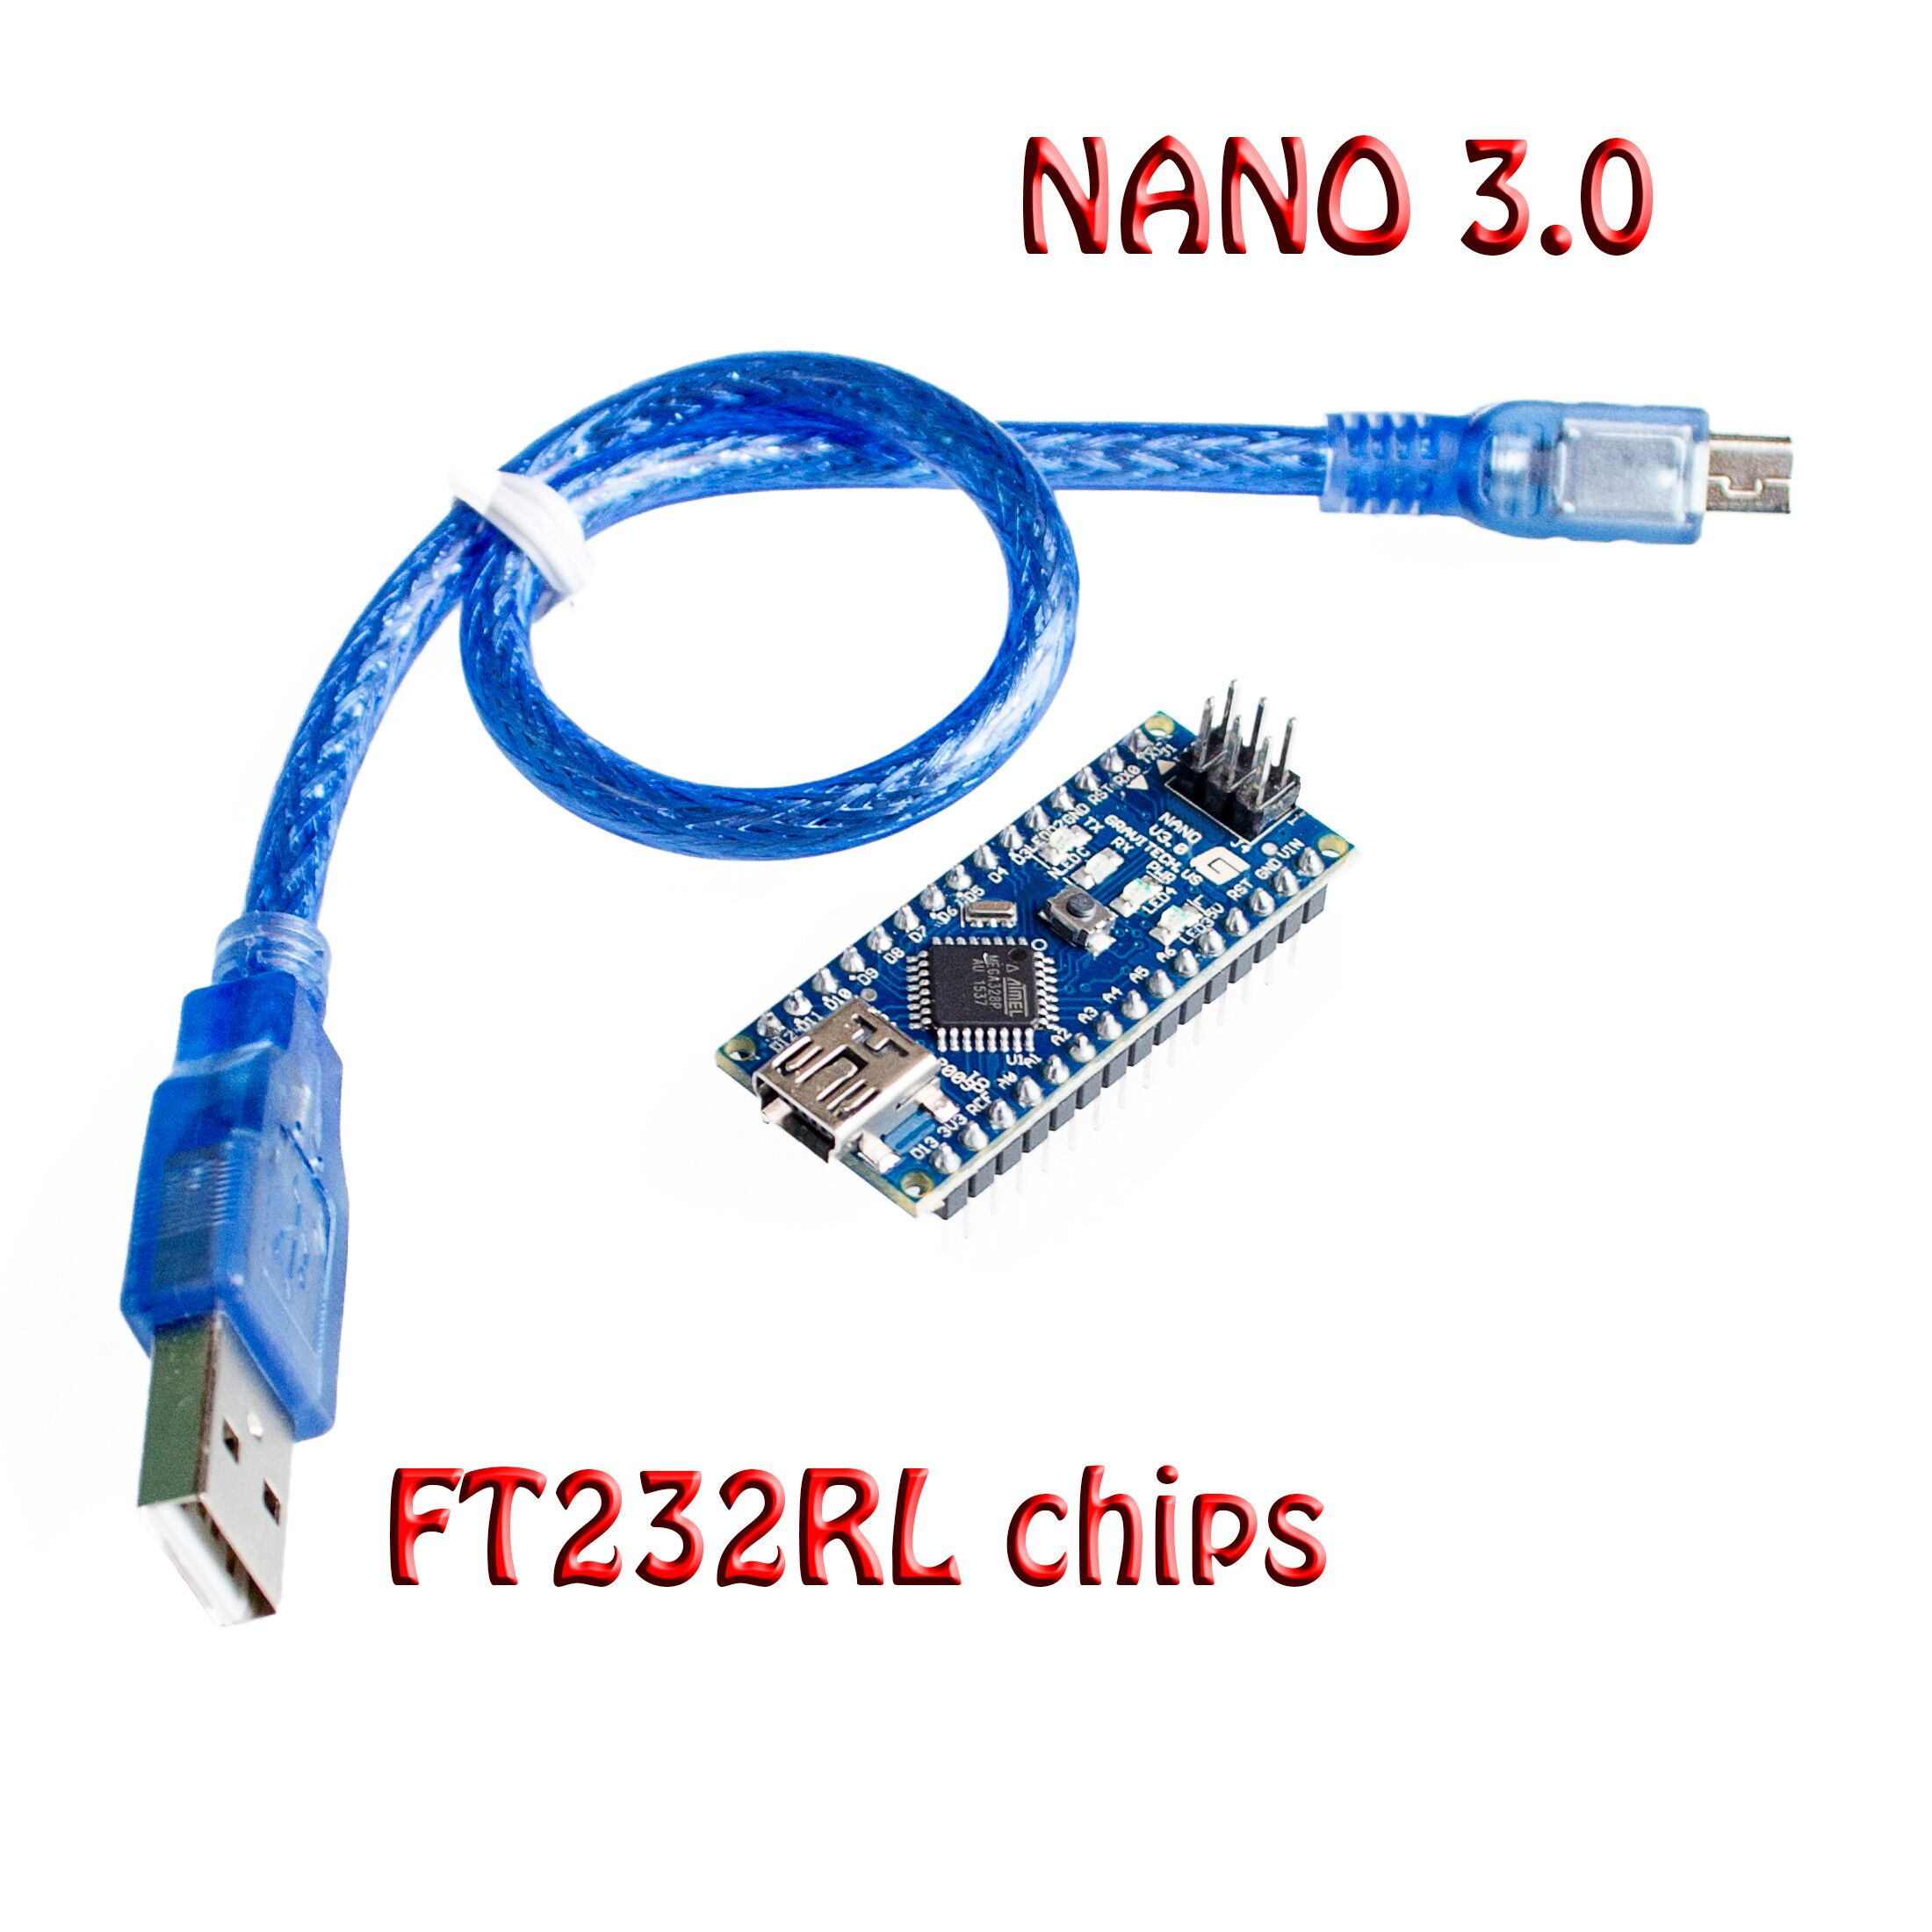 Nano 3.0 atmega328 mini version <font><b>FT232RL</b></font> imported <font><b>chips</b></font> support win7 Win8 for arduino with USB cable image